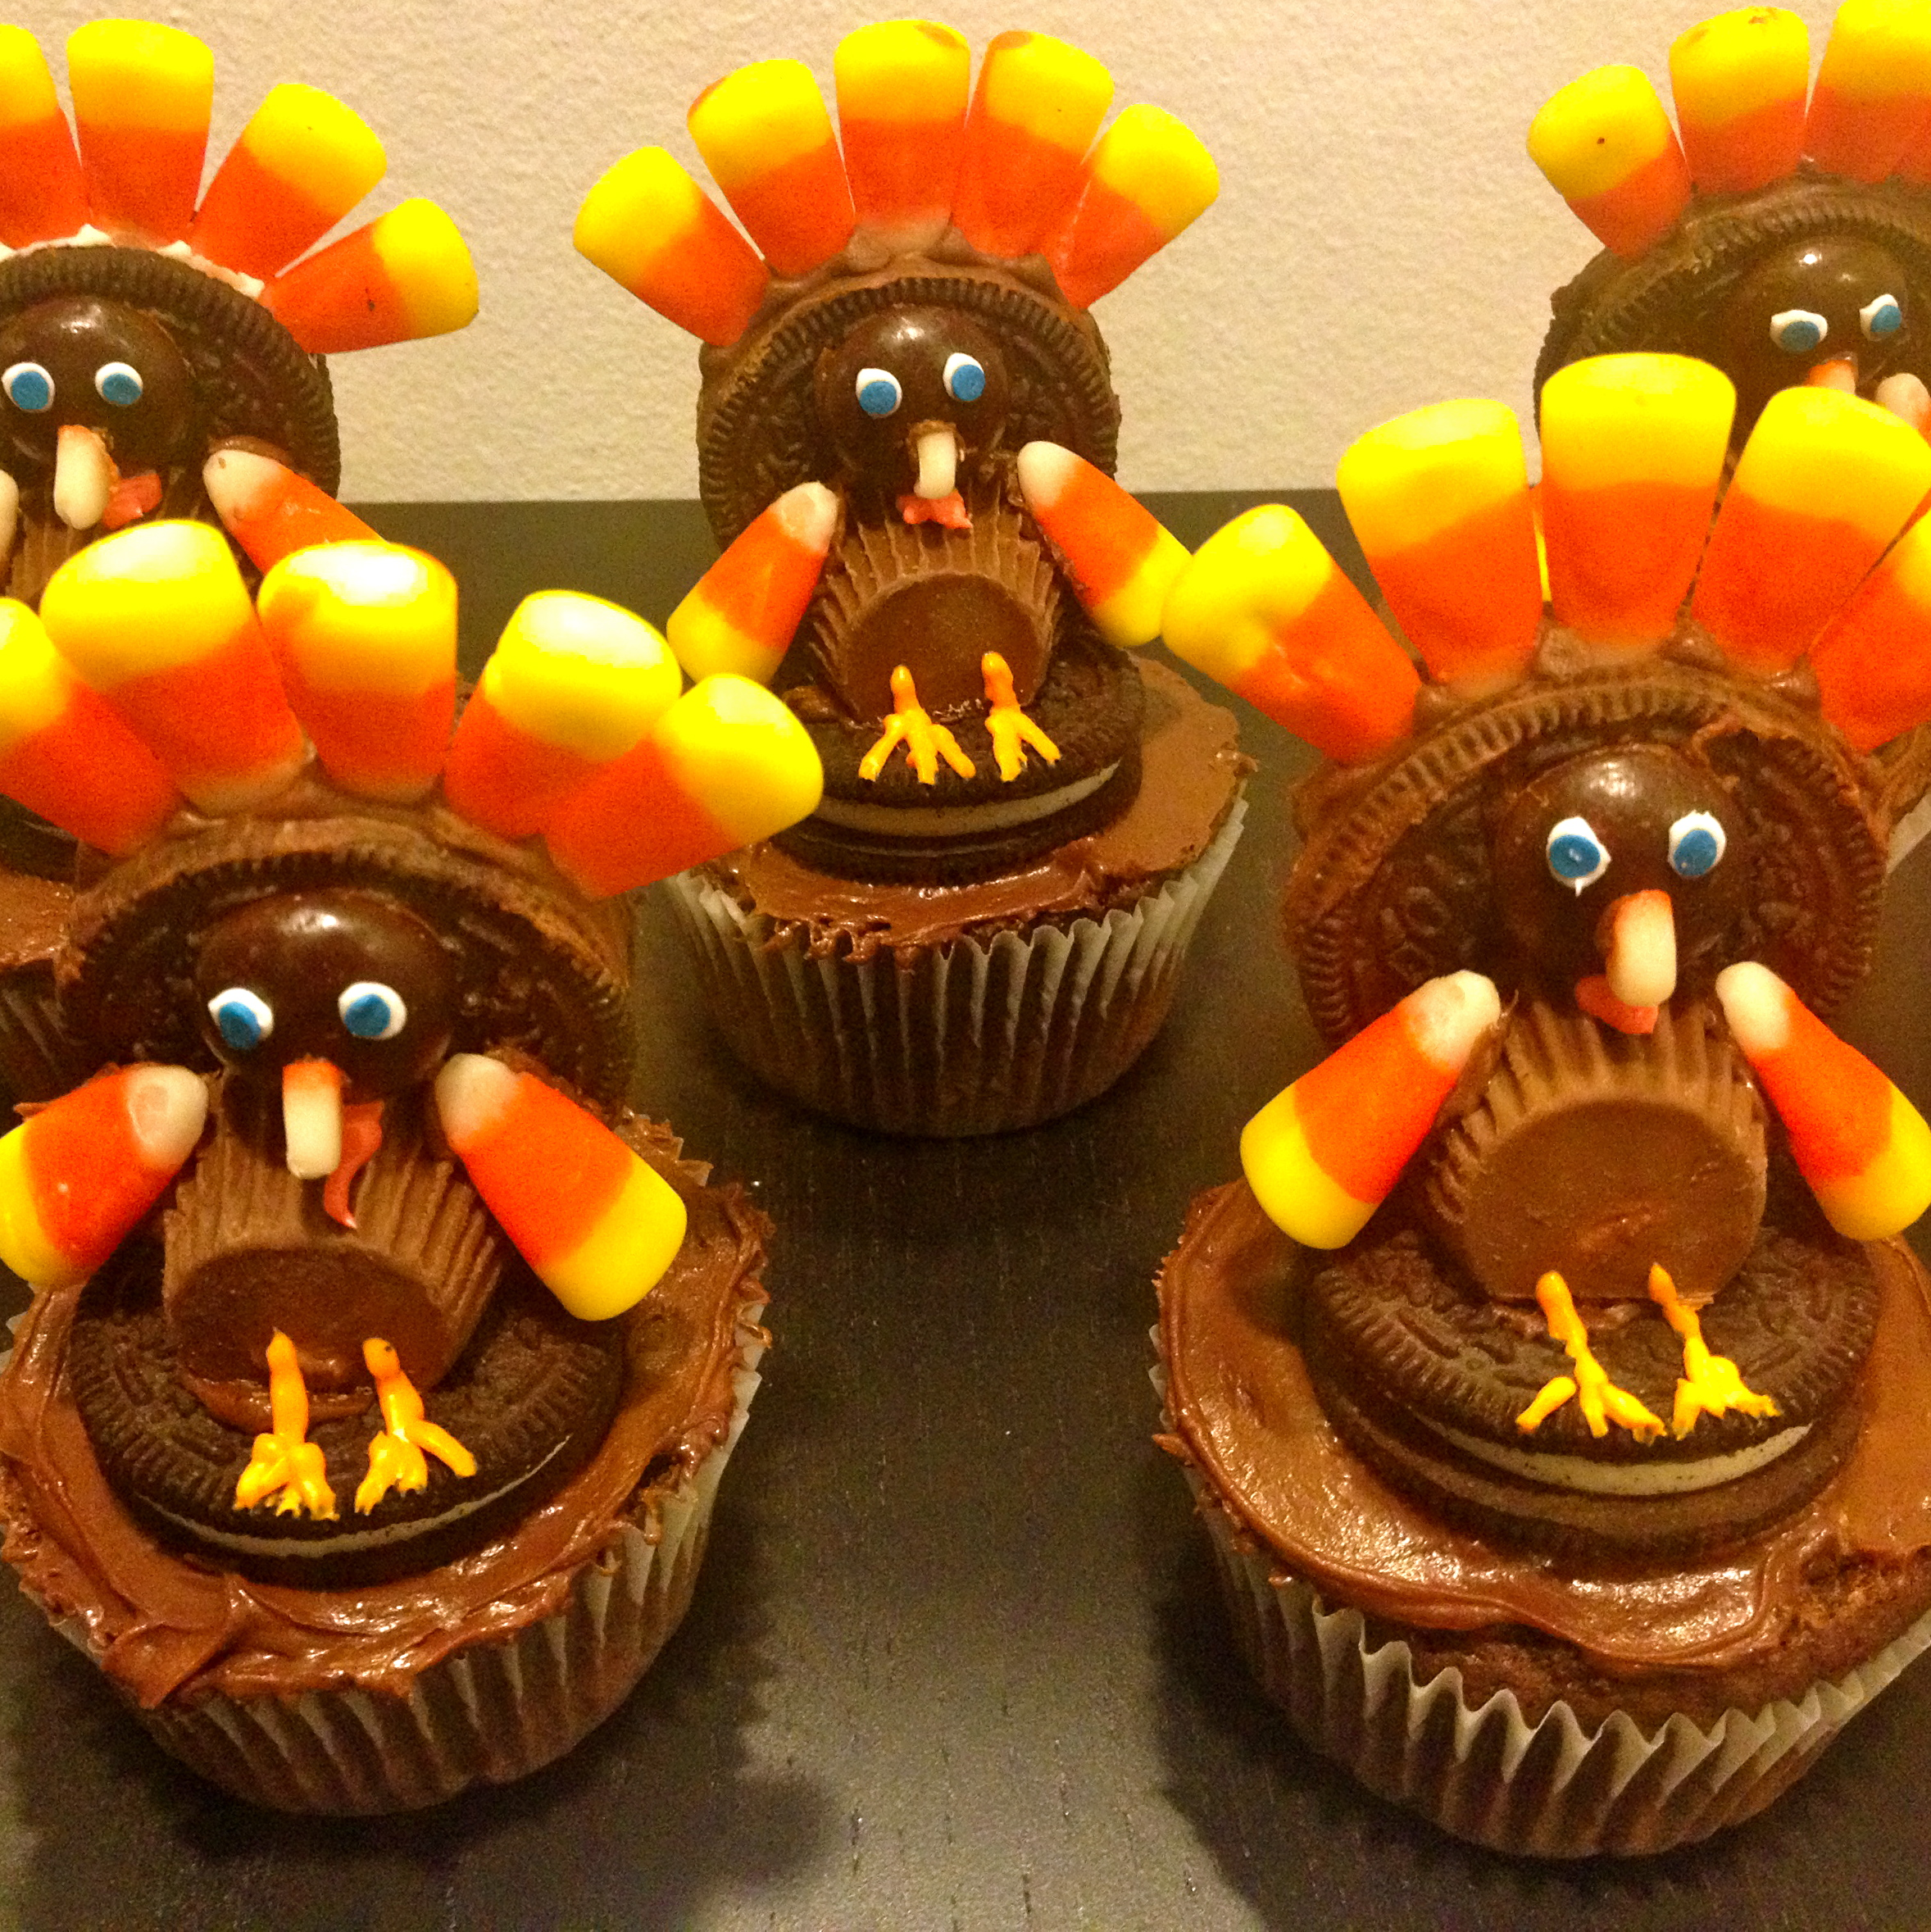 Turkey Cupcakes with Candy Corn